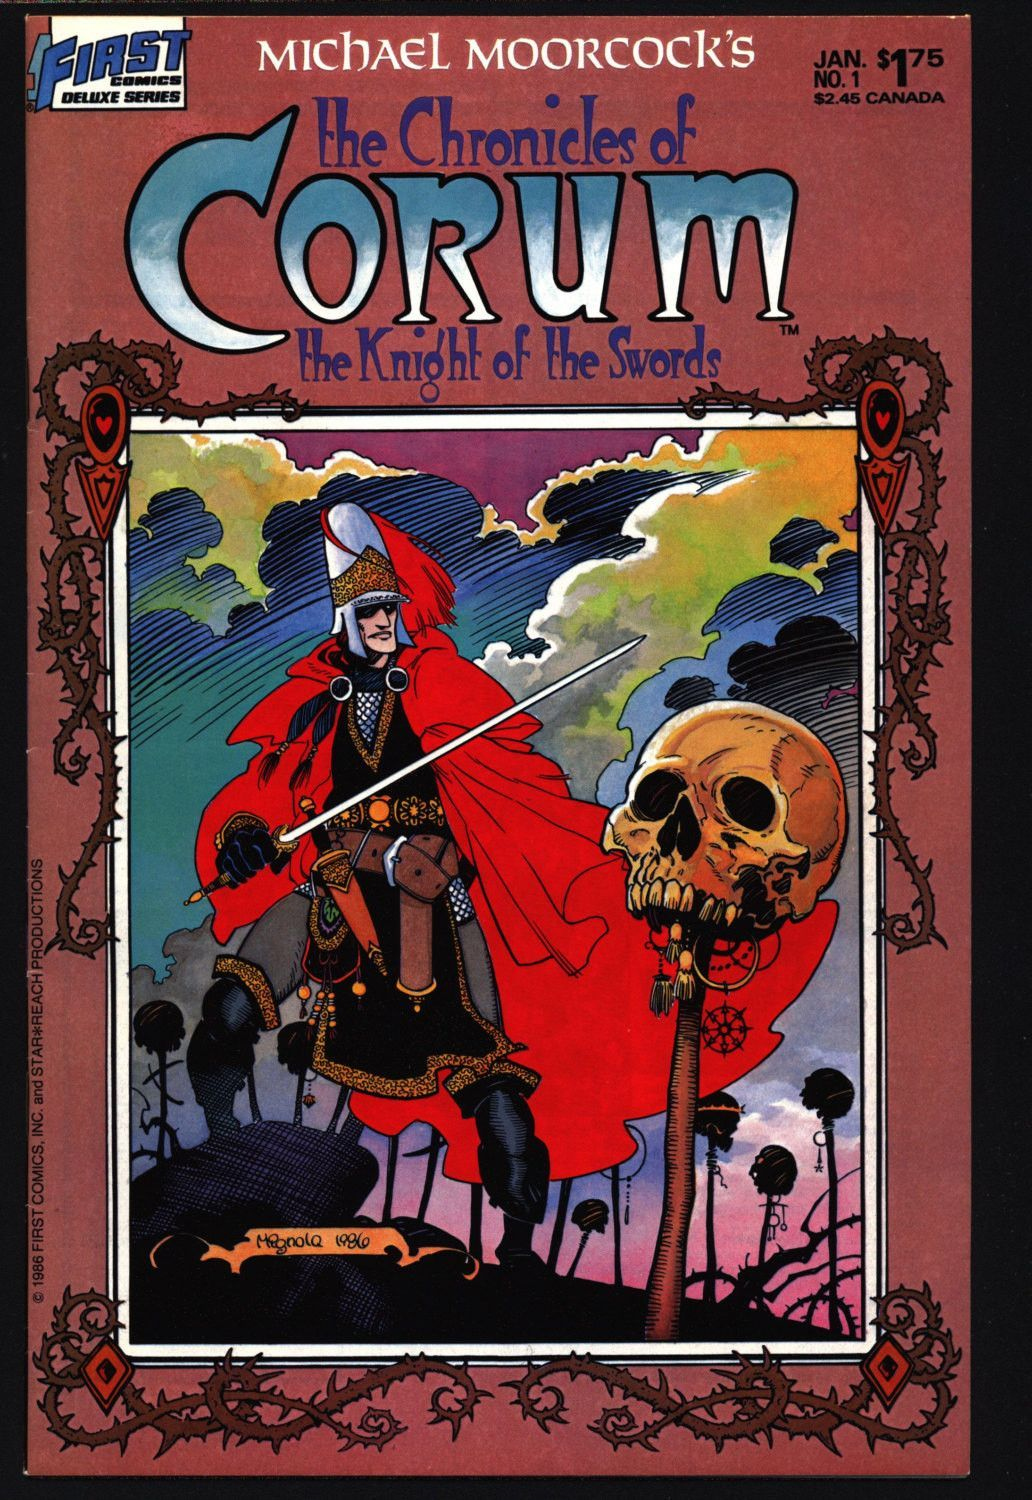 CHRONICLES OF CORUM: KNIGHT OF THE SWORDS #1-4 (of 12) COMPLETE RUN